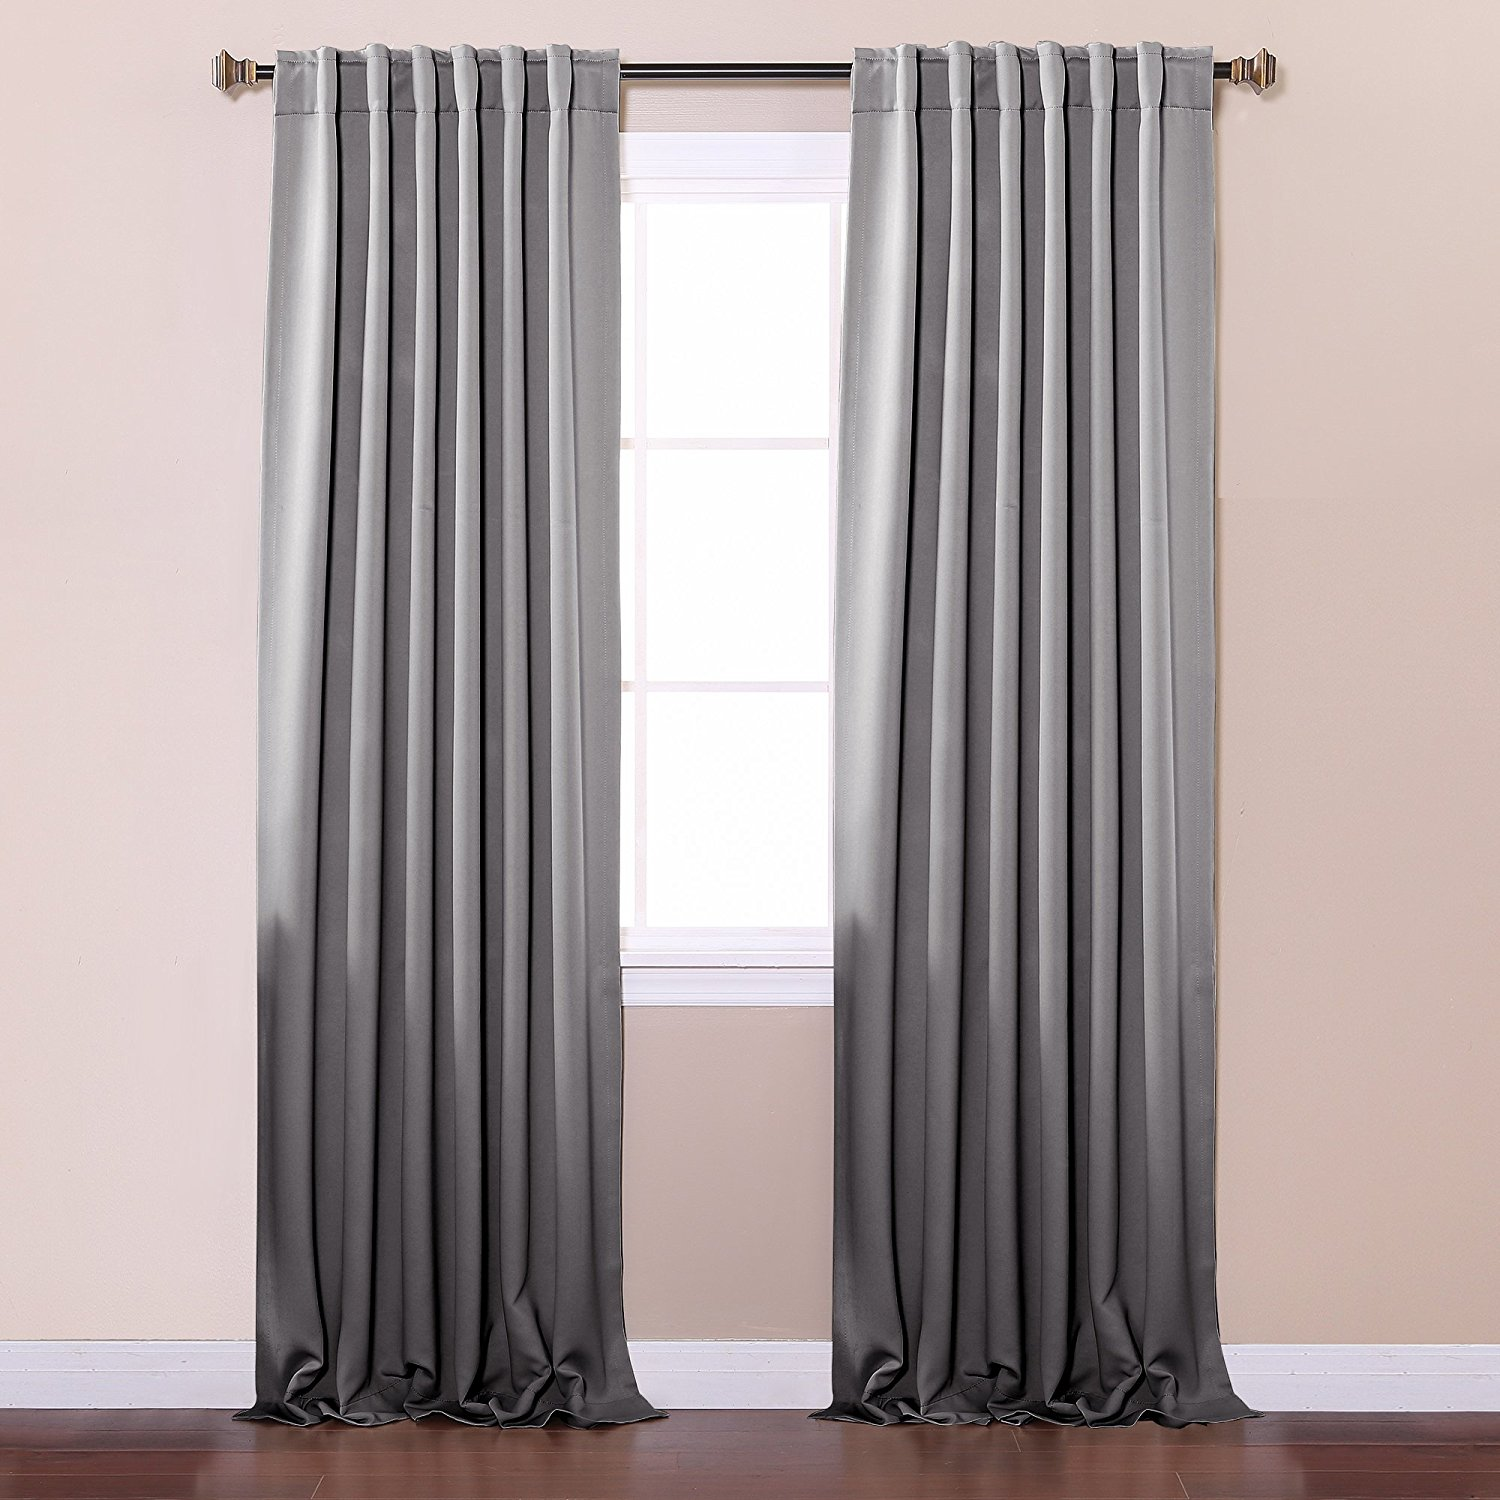 Thermal Insulating Curtains | Thermal Insulated Curtains | Cheap Thermal Curtains